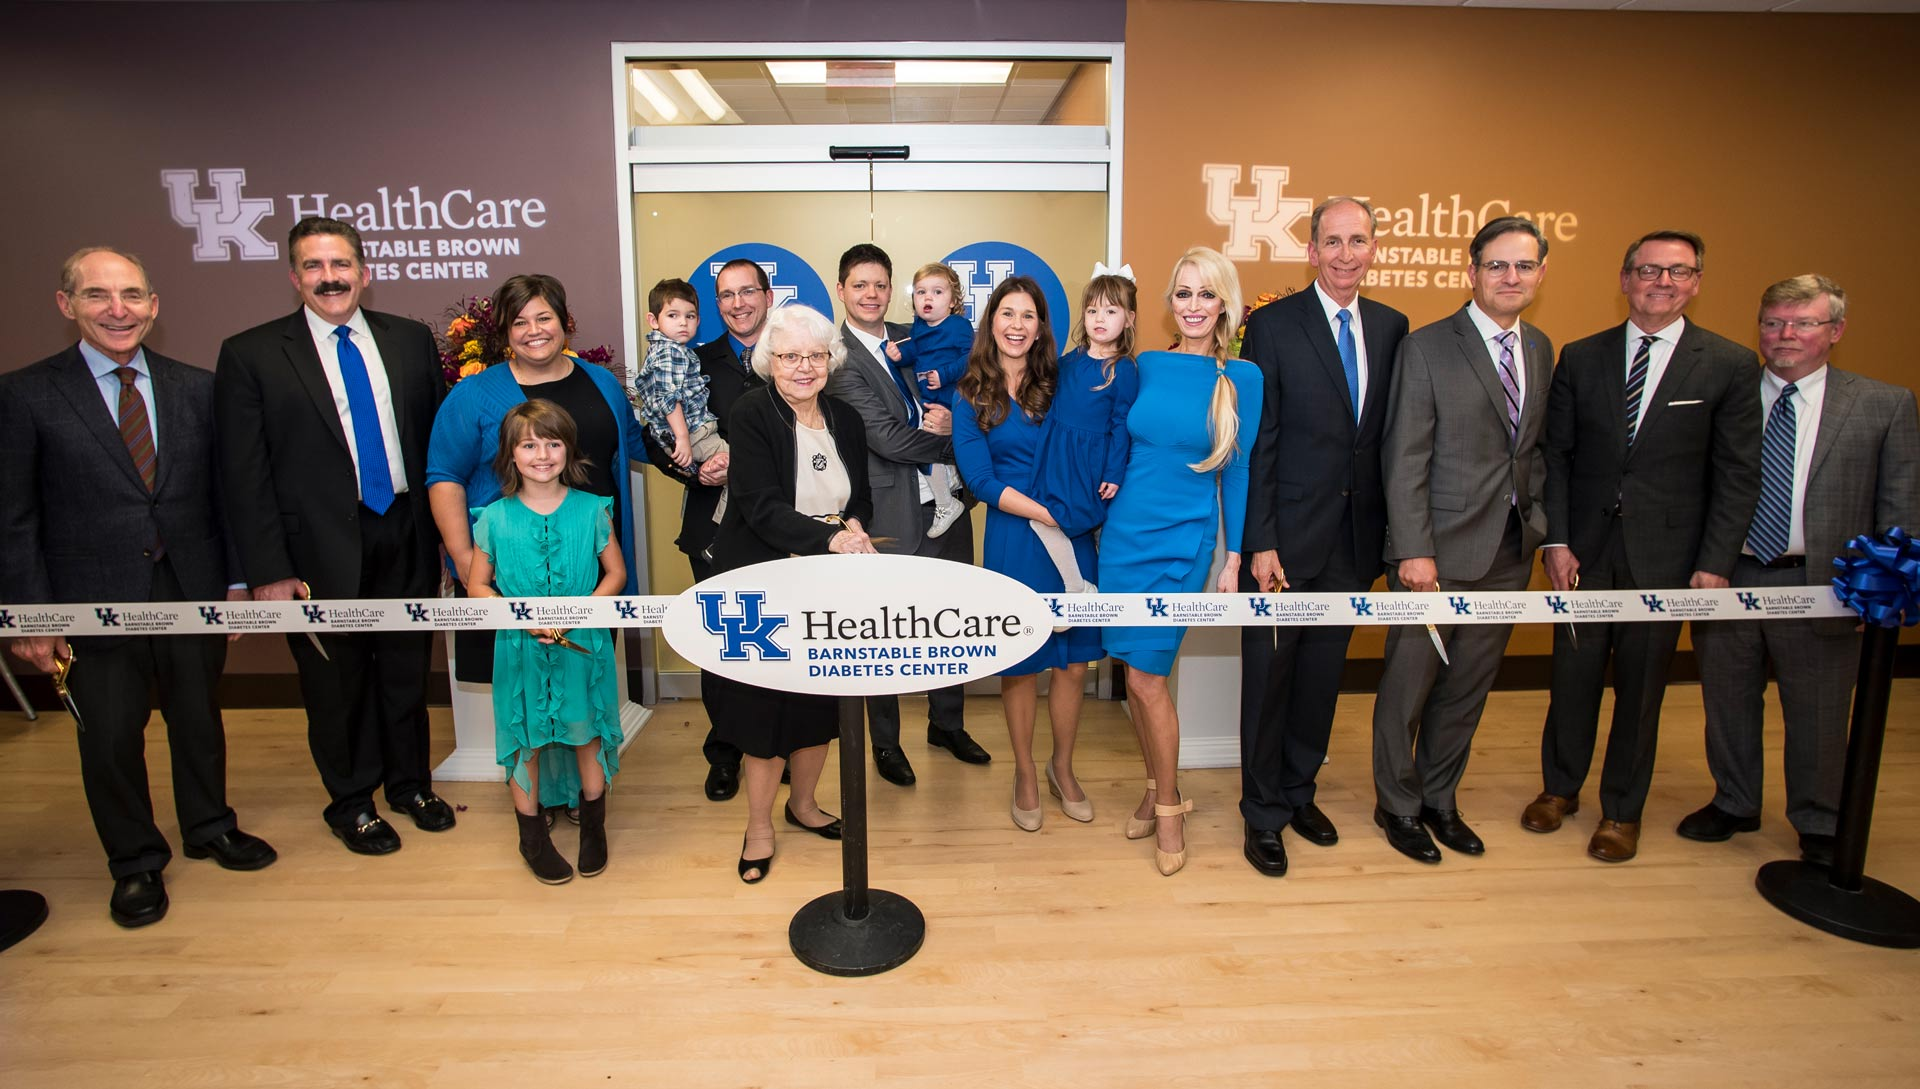 A group of people, including members of UK, UK HealthCare, and the Barnstable-Brown family, pose for a photo at the ribbon-cutting ceremony for the expanded UK HealthCare Barnstable Brown Diabetes Center.